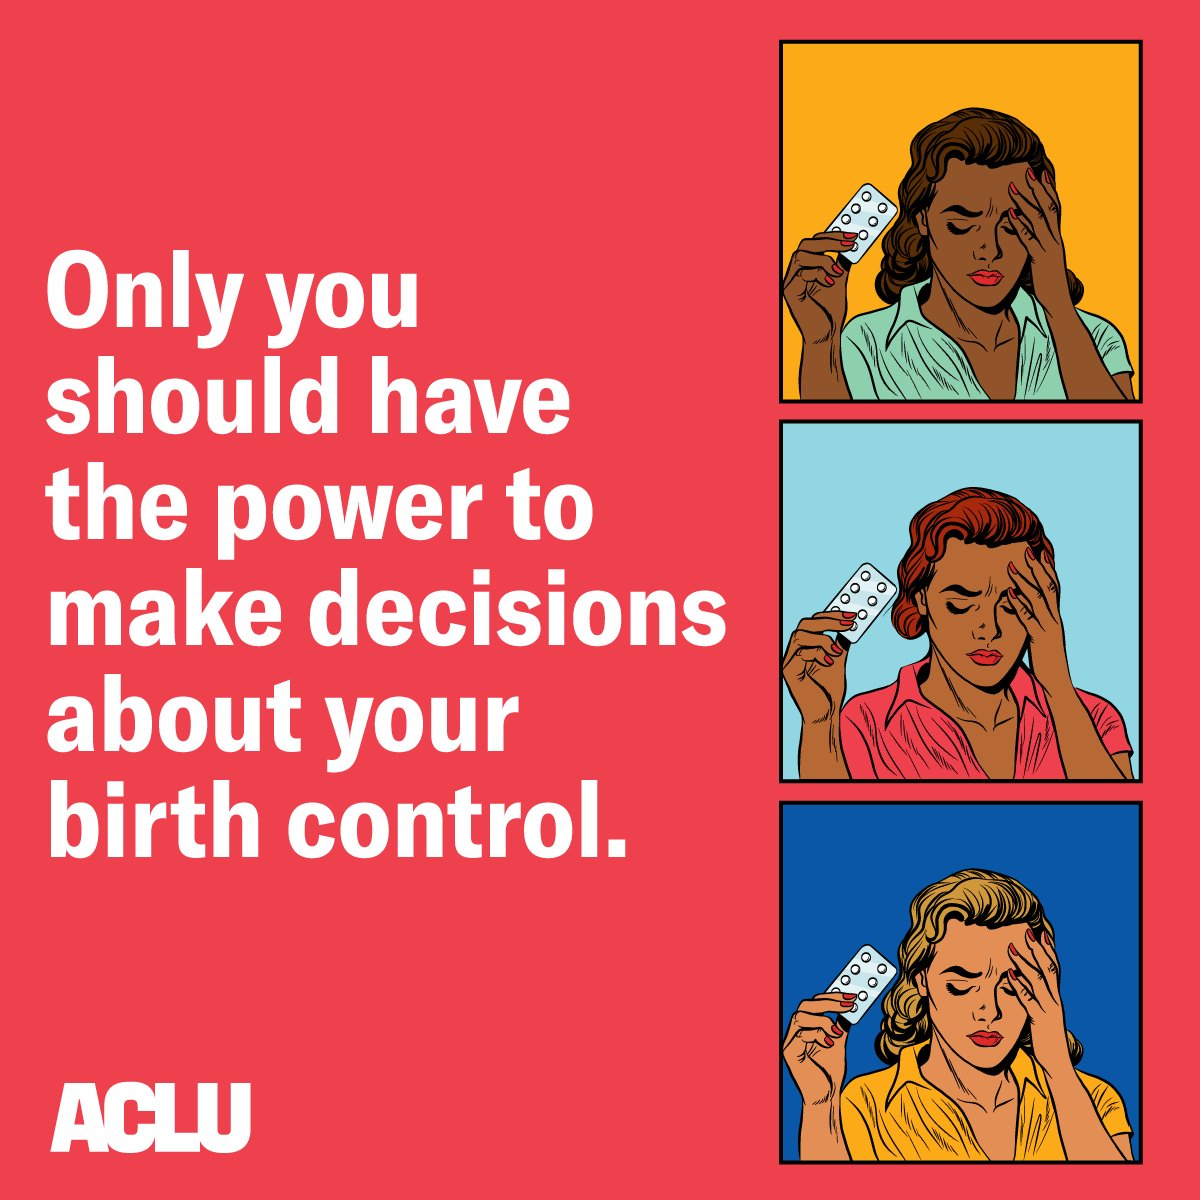 BREAKING: We're suing the Trump administration to block new rules allowing employers to deny insurance coverage for birth control.